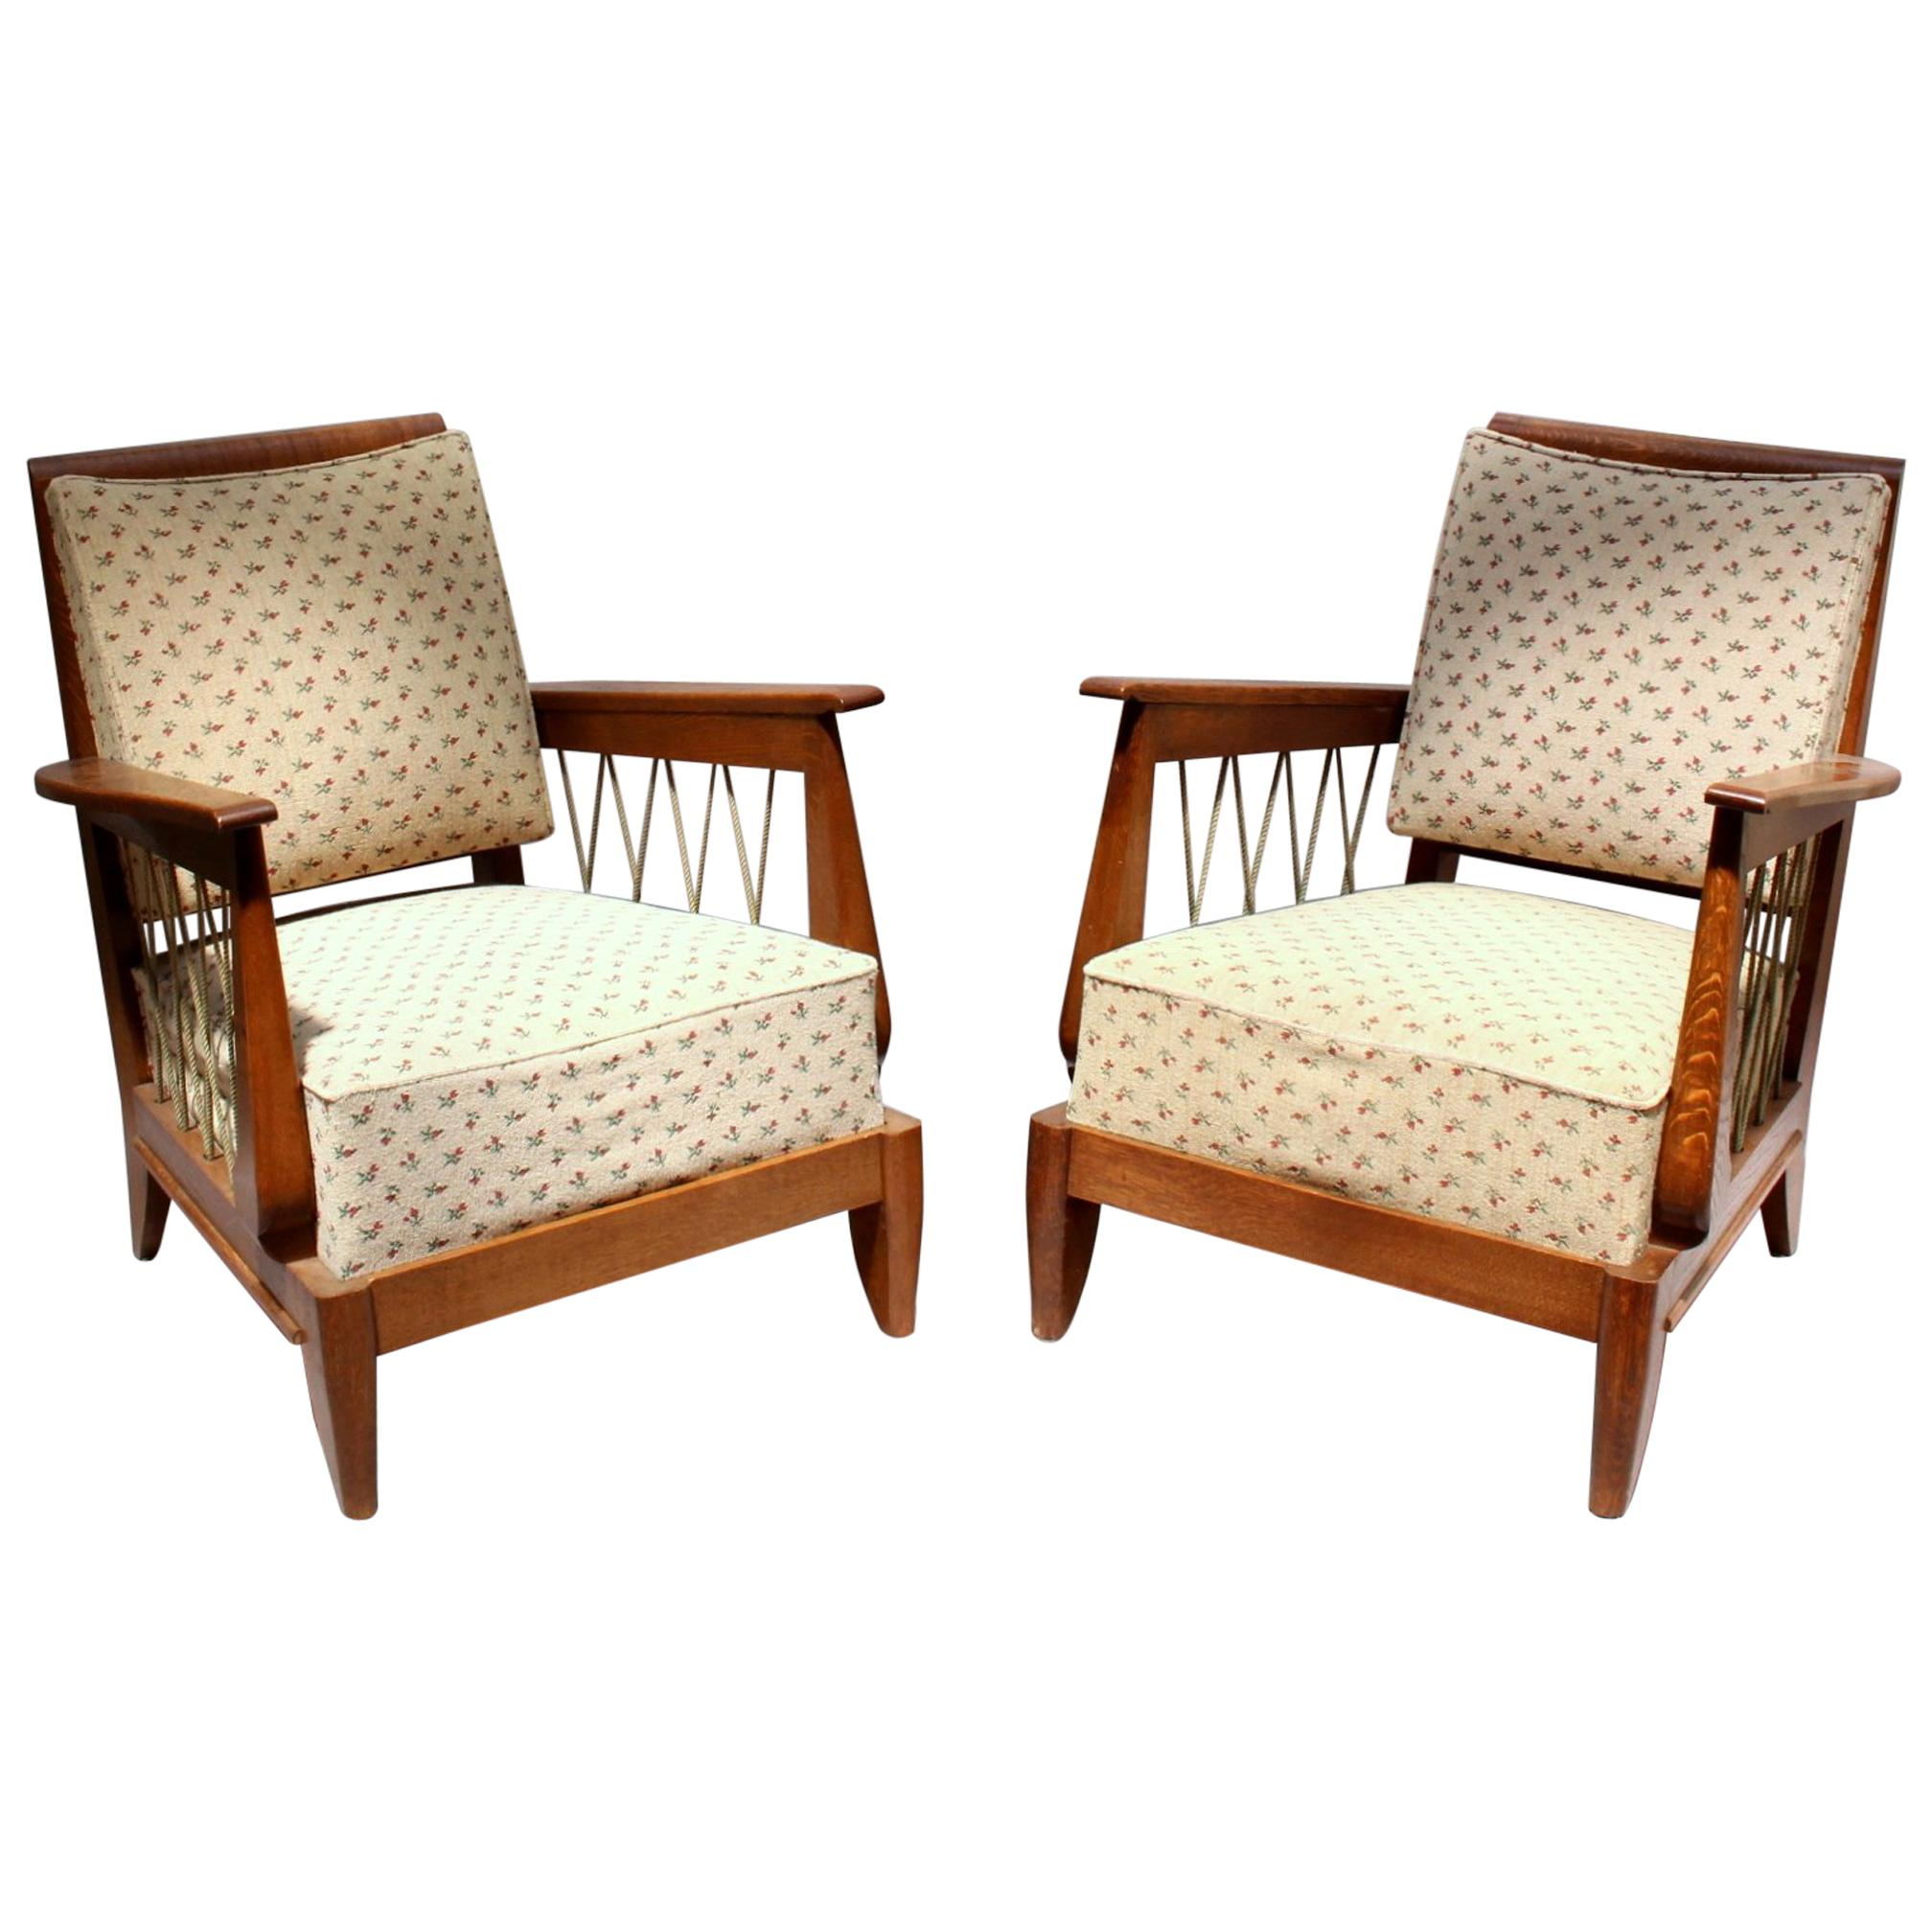 Pair of Fine French 1950's Oak Armchairs with Rope Details